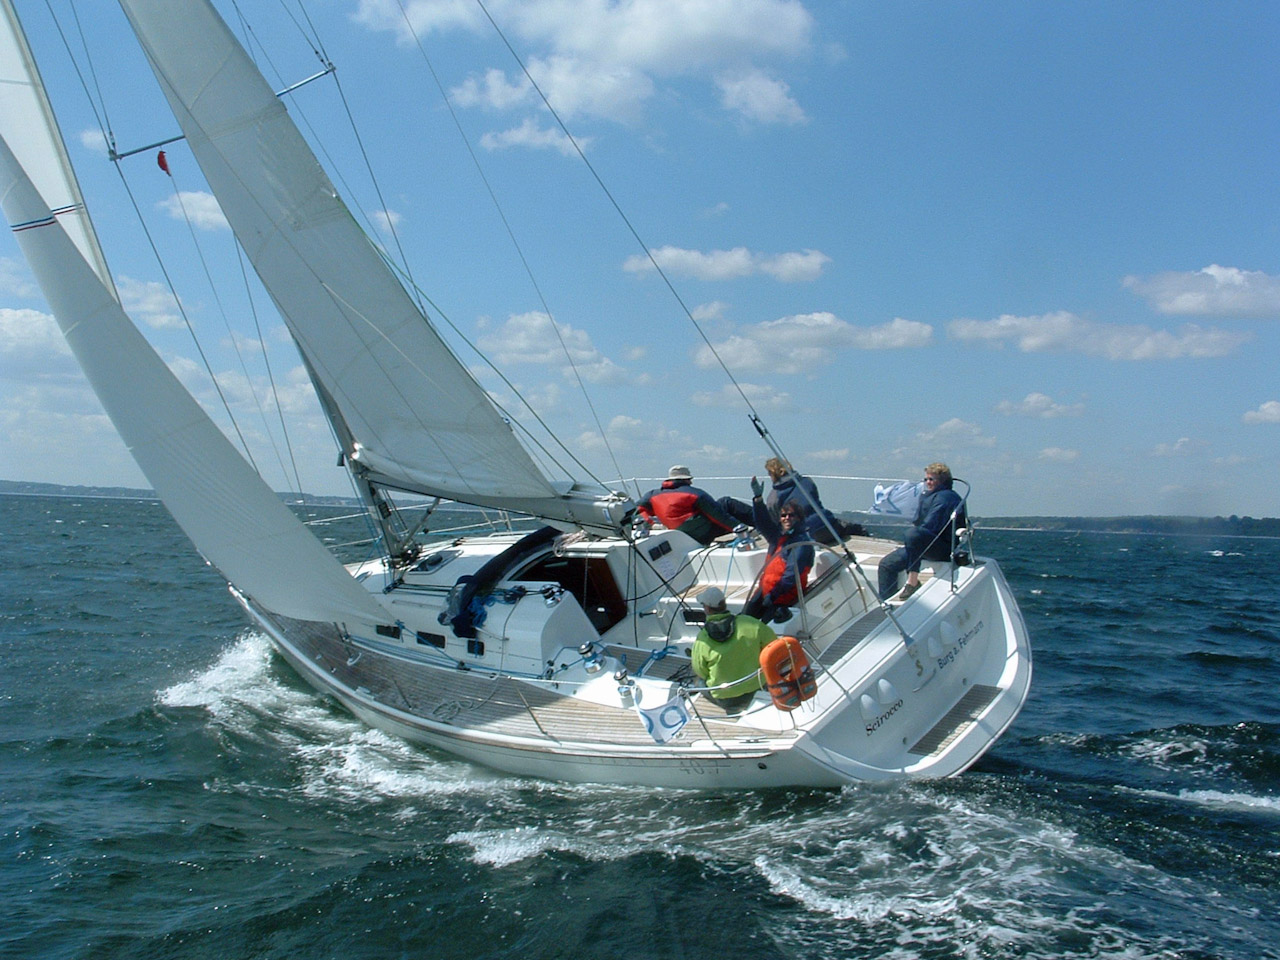 Baltic-cup-11